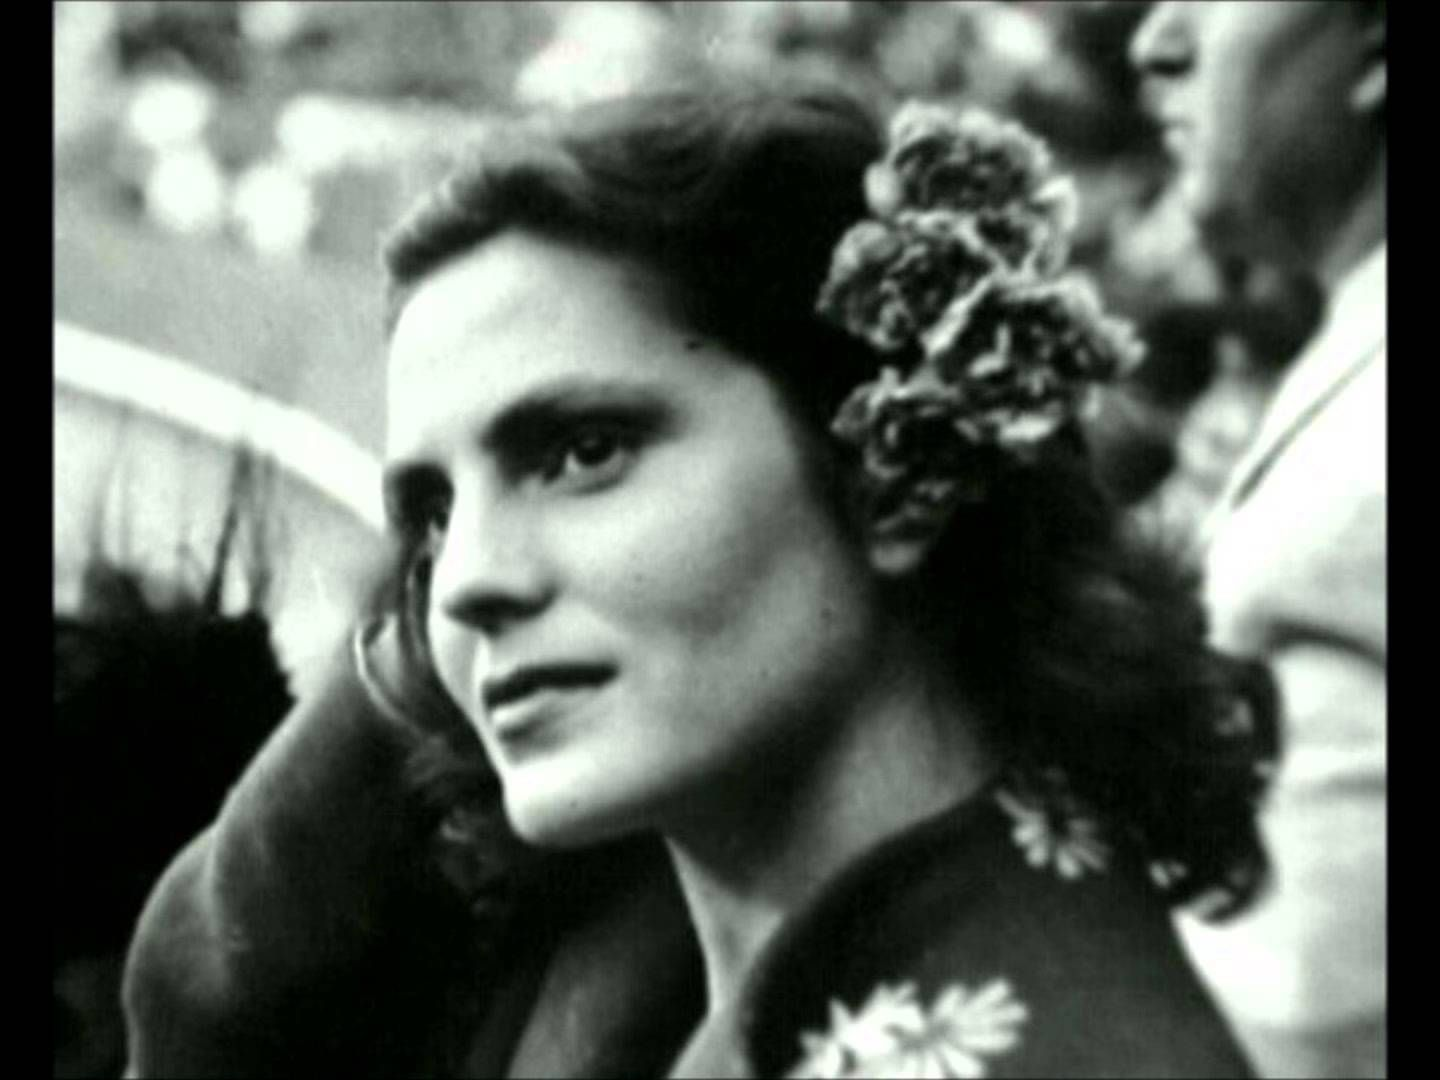 Amália Rodrigues - Saudades de Ti (Só à Noitinha)This FADO, this video is dedicated to my beloved Mother, Palmira A. Rodrigues. I miss her my beloved Lord Jesus. AMEN